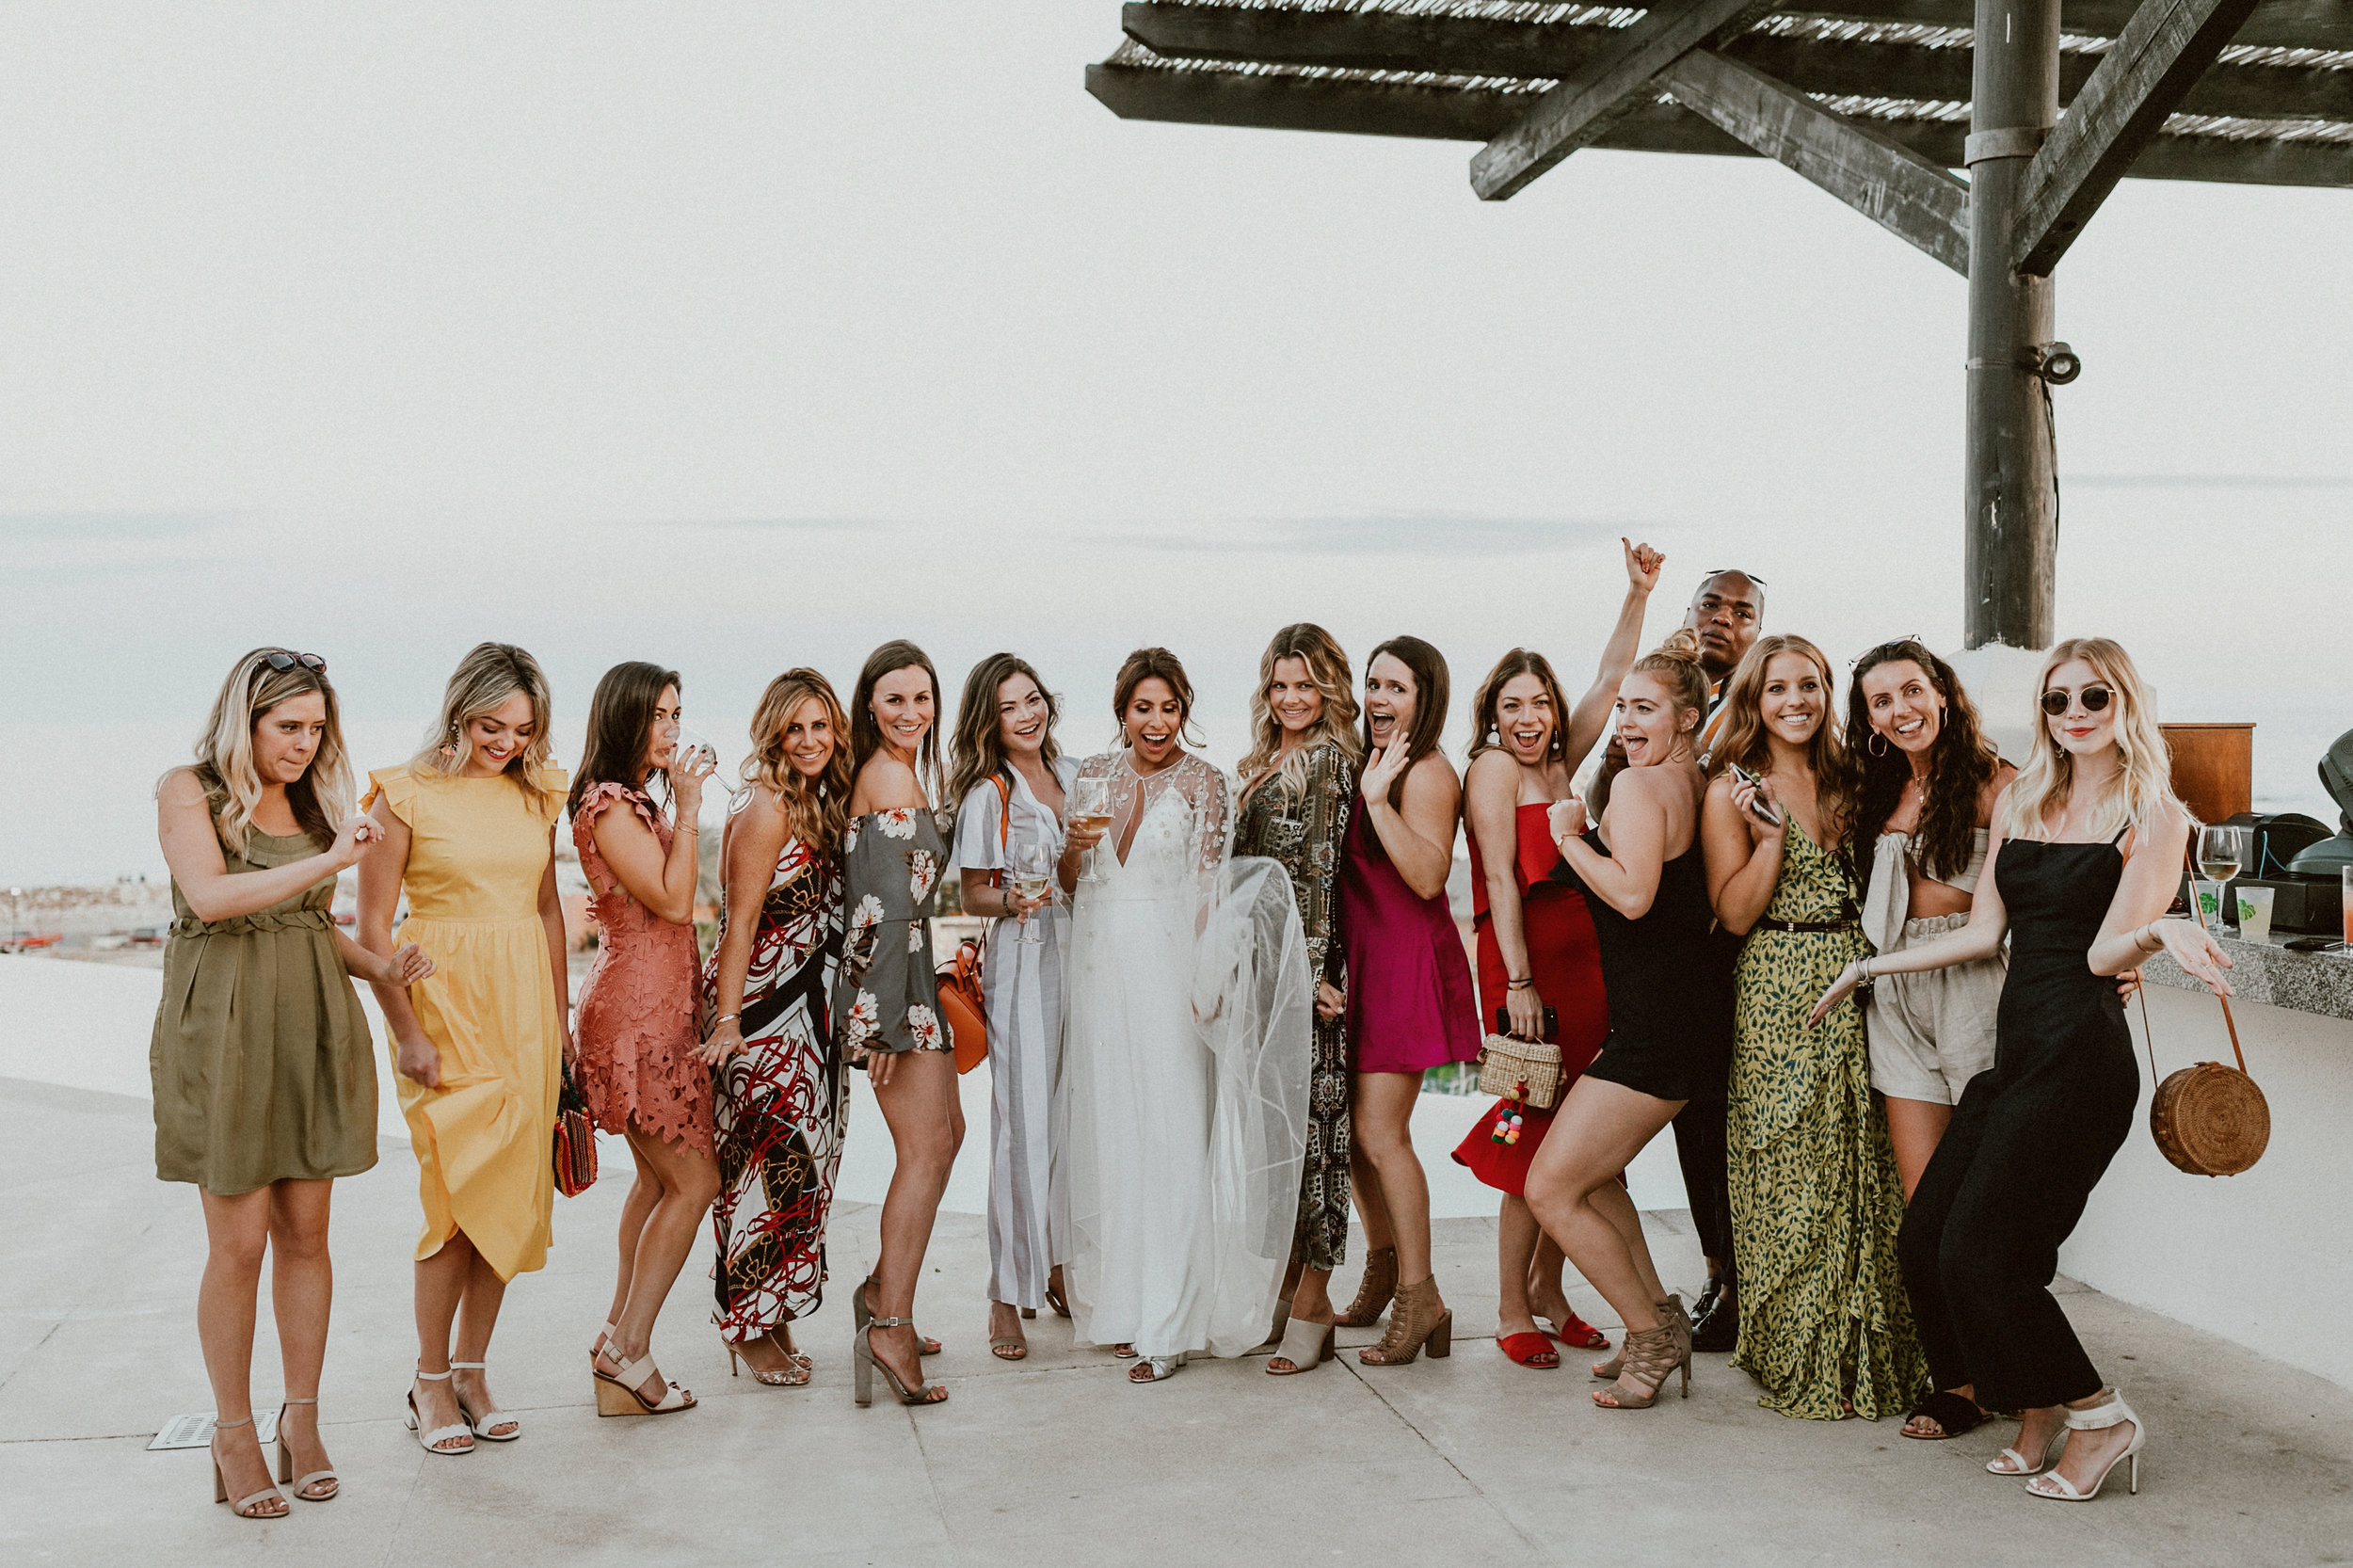 Everyday Pursuit Los Cabos Wedding - El Ganzo Hotel